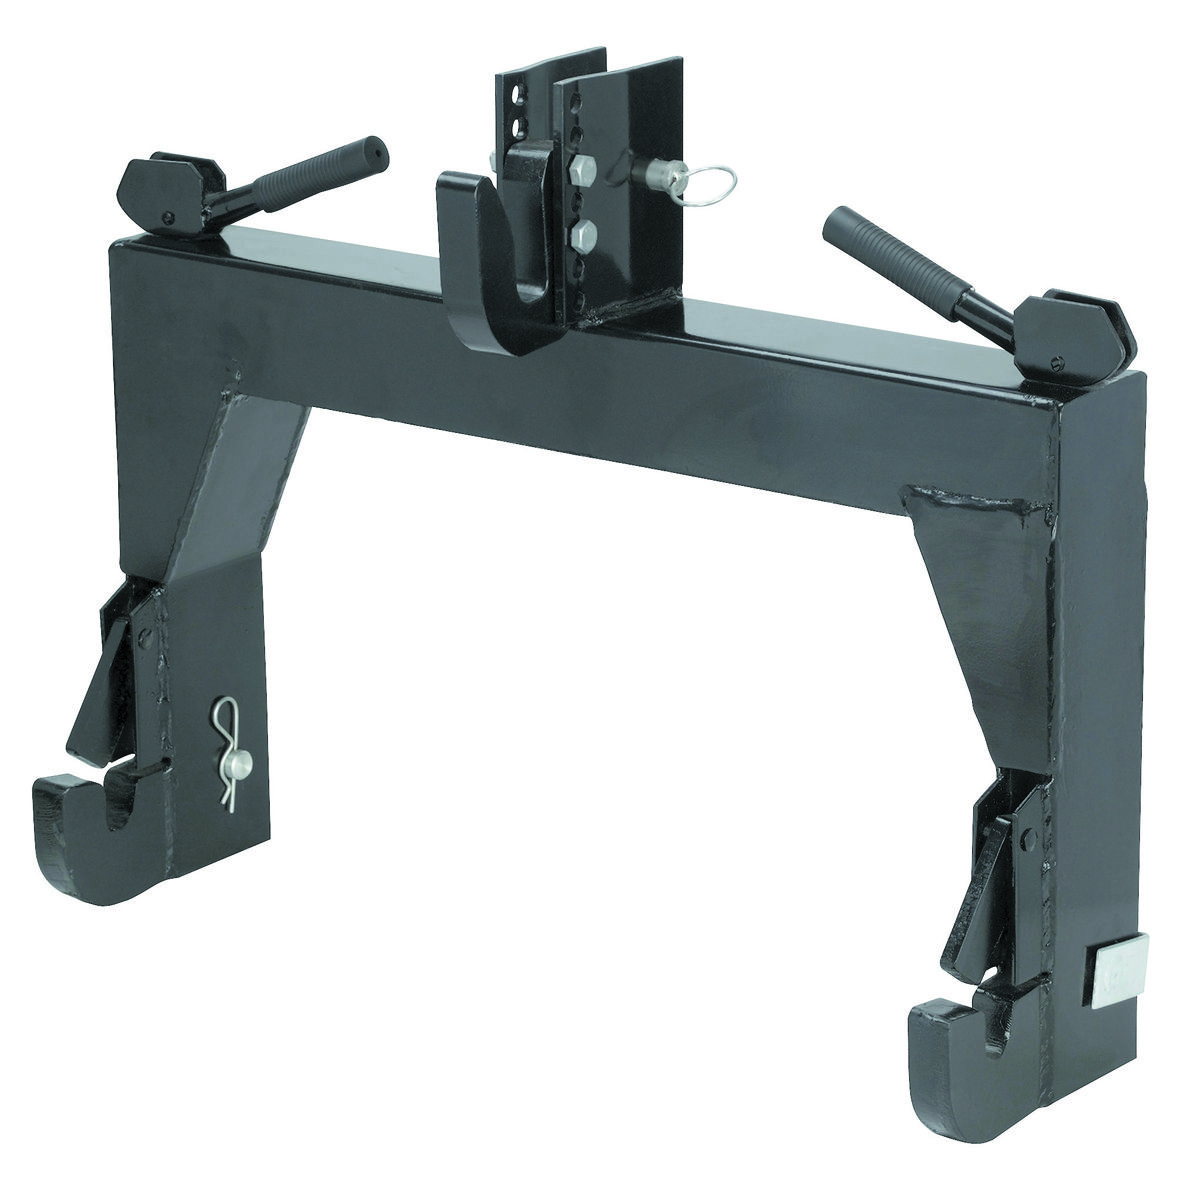 3-Point Quick Hitch - 27-3/16 In. Clearance